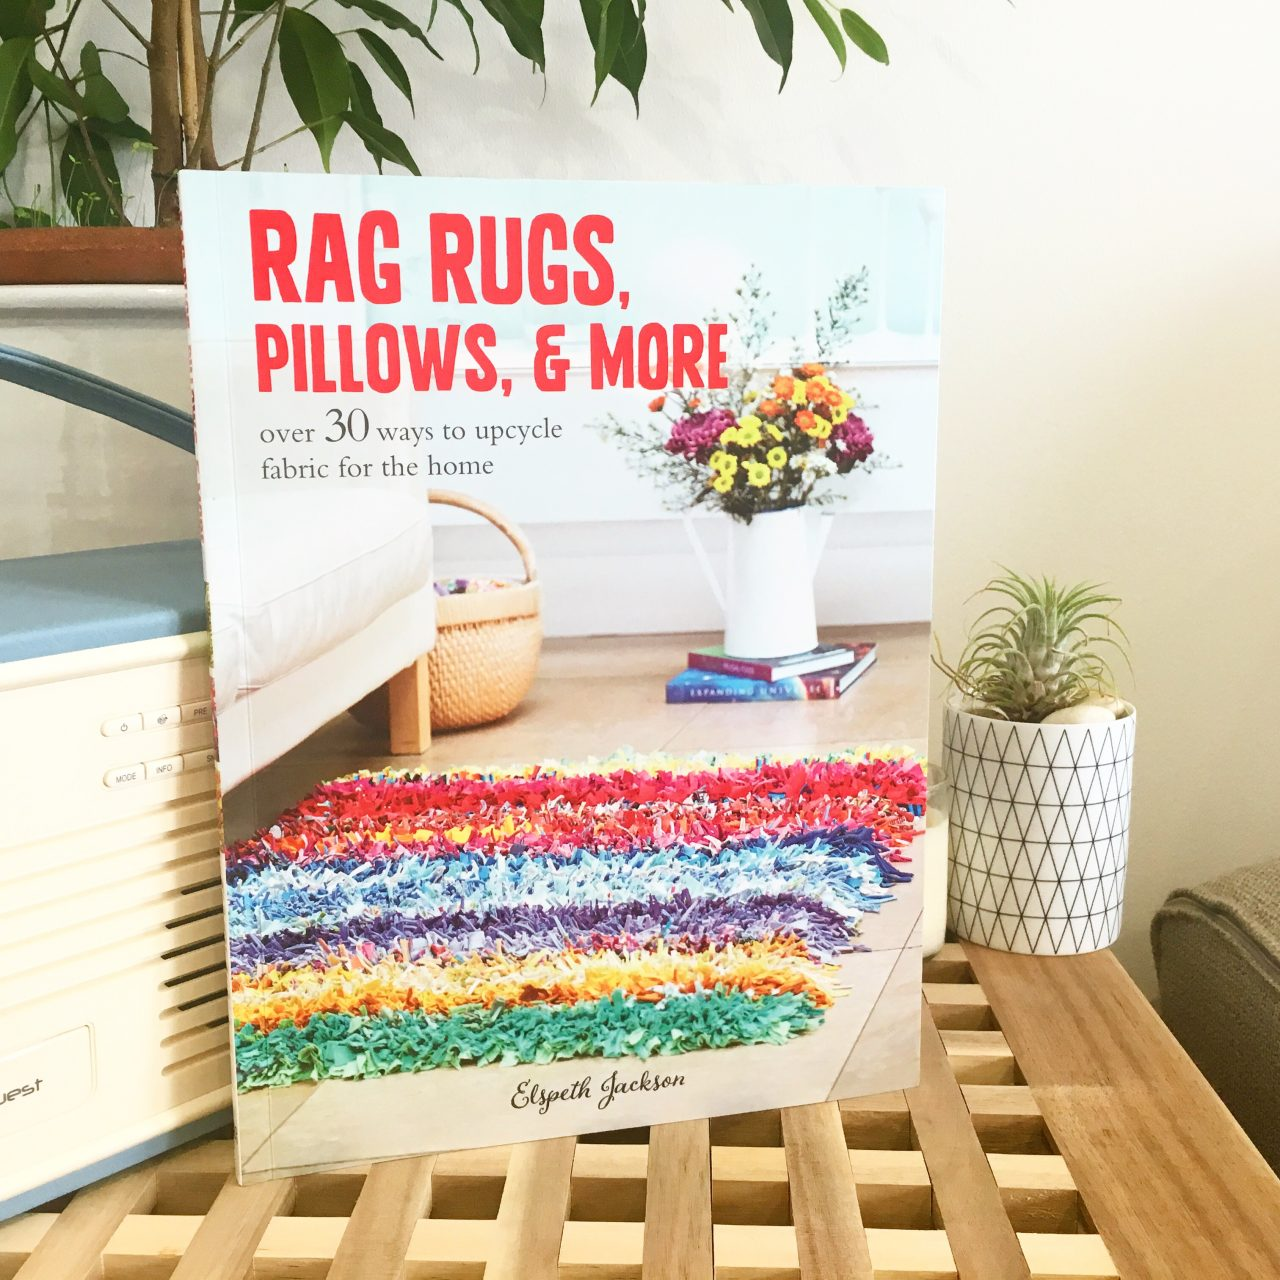 Rag rugs, Pillows and More book by Elspeth Jackson